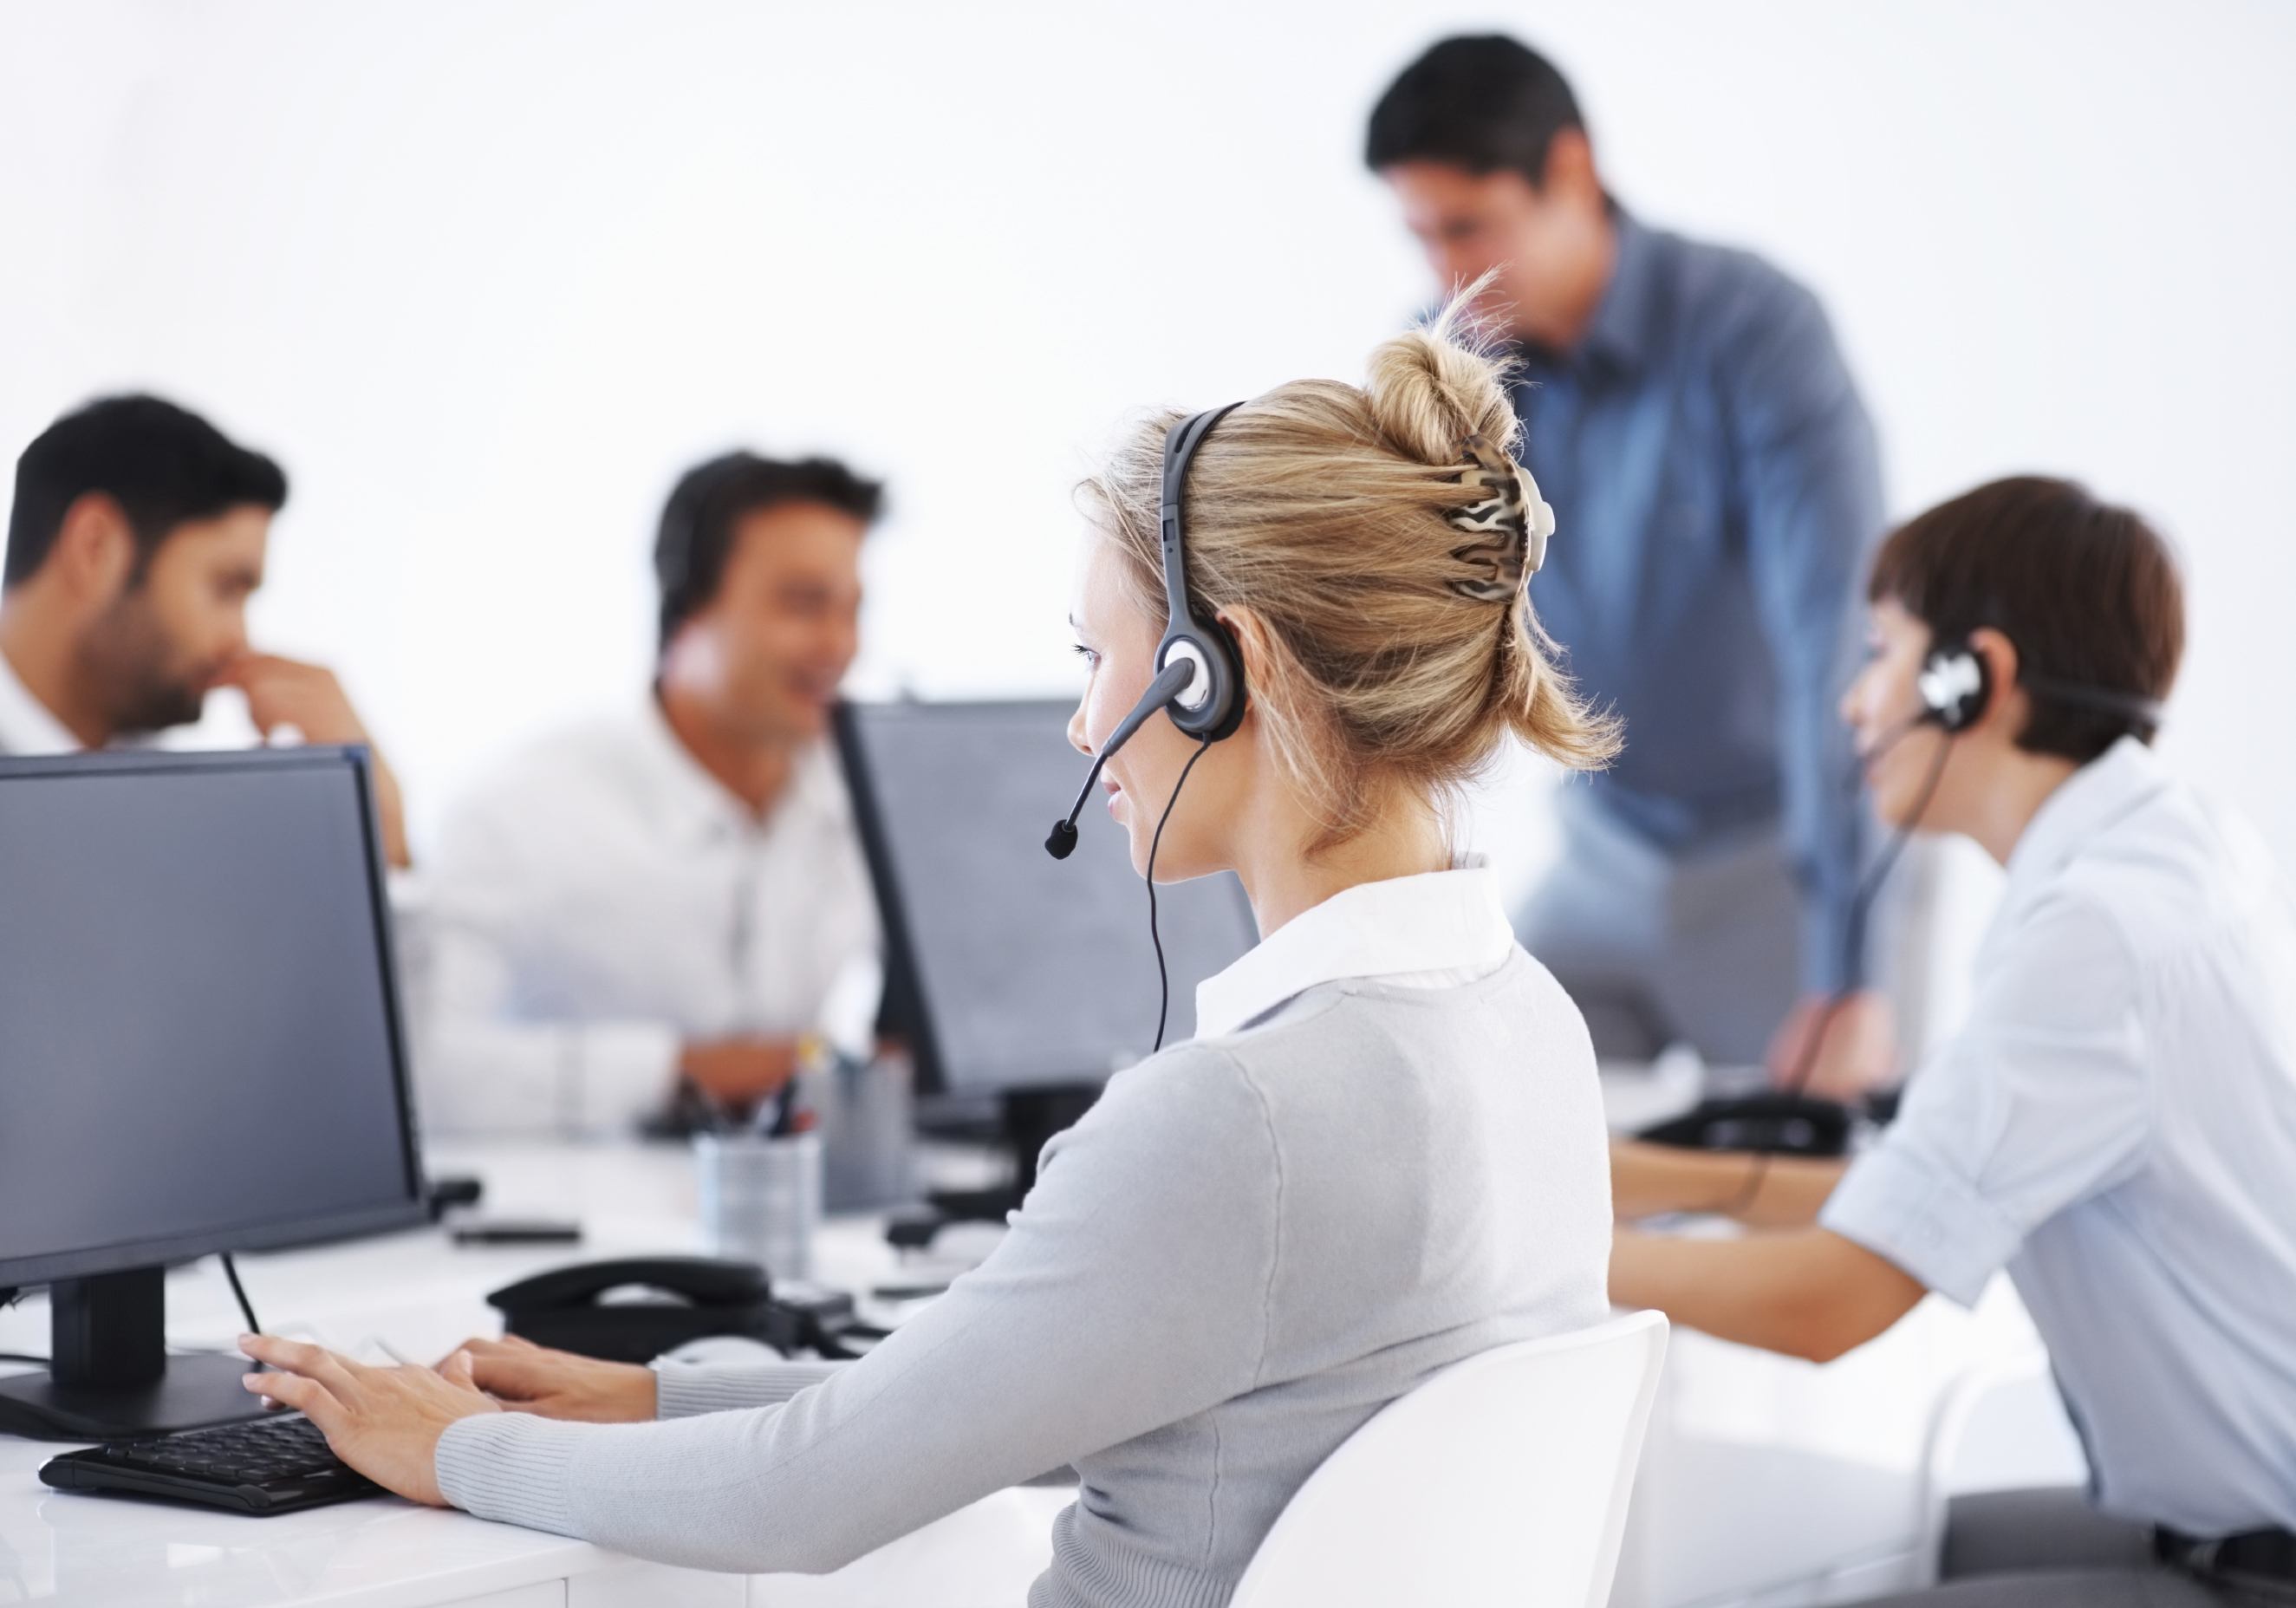 V1 VoIP saves call centers money on termination voice traffic minutes